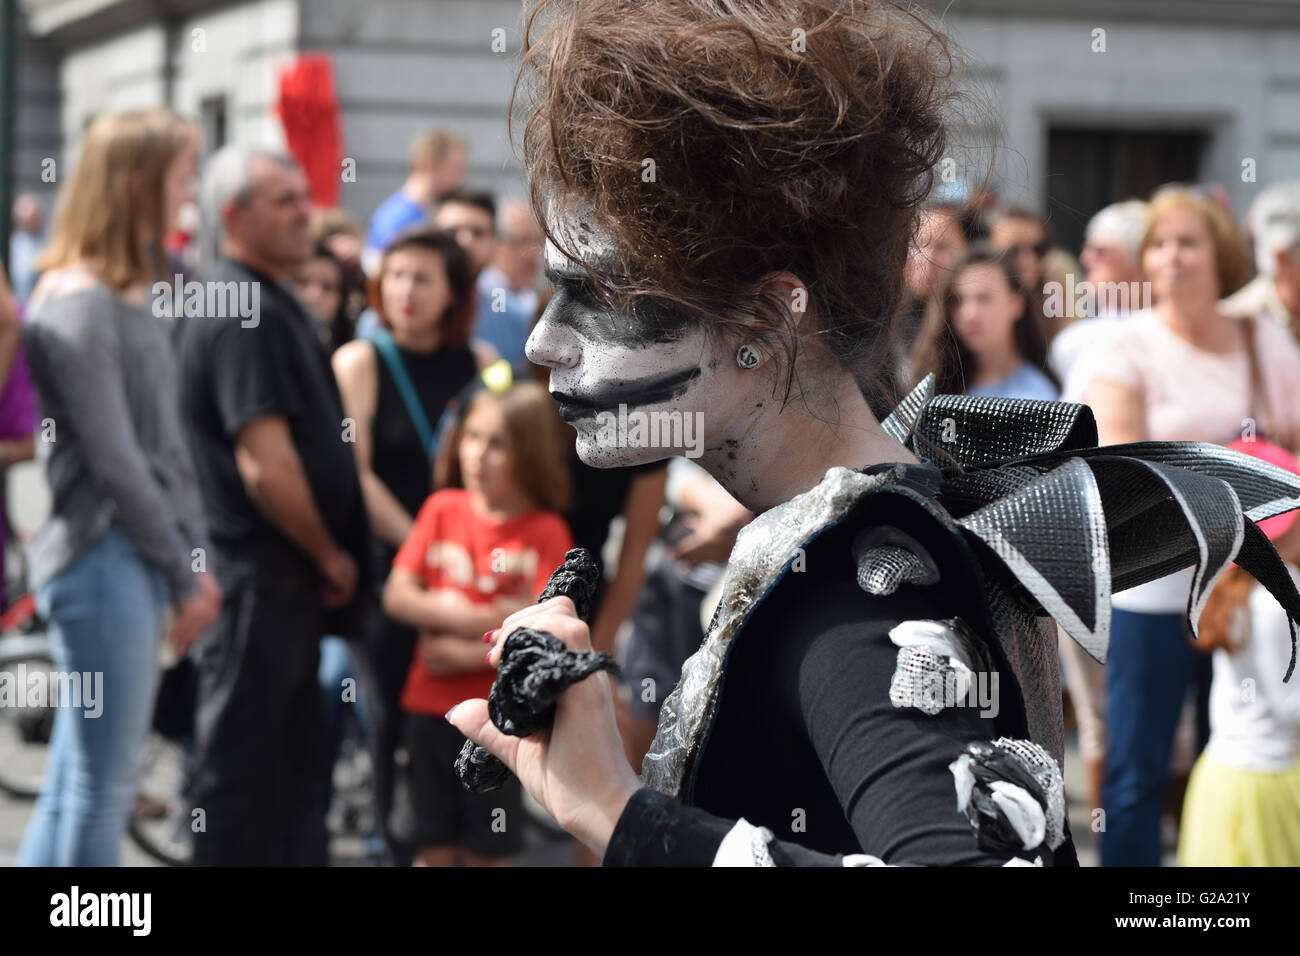 BRUSSELS, BELGIUM - MAY 21, 2016: Unidentified participant in her mystic outfit at the biennial Zinneke Parade 2016. - Stock Image